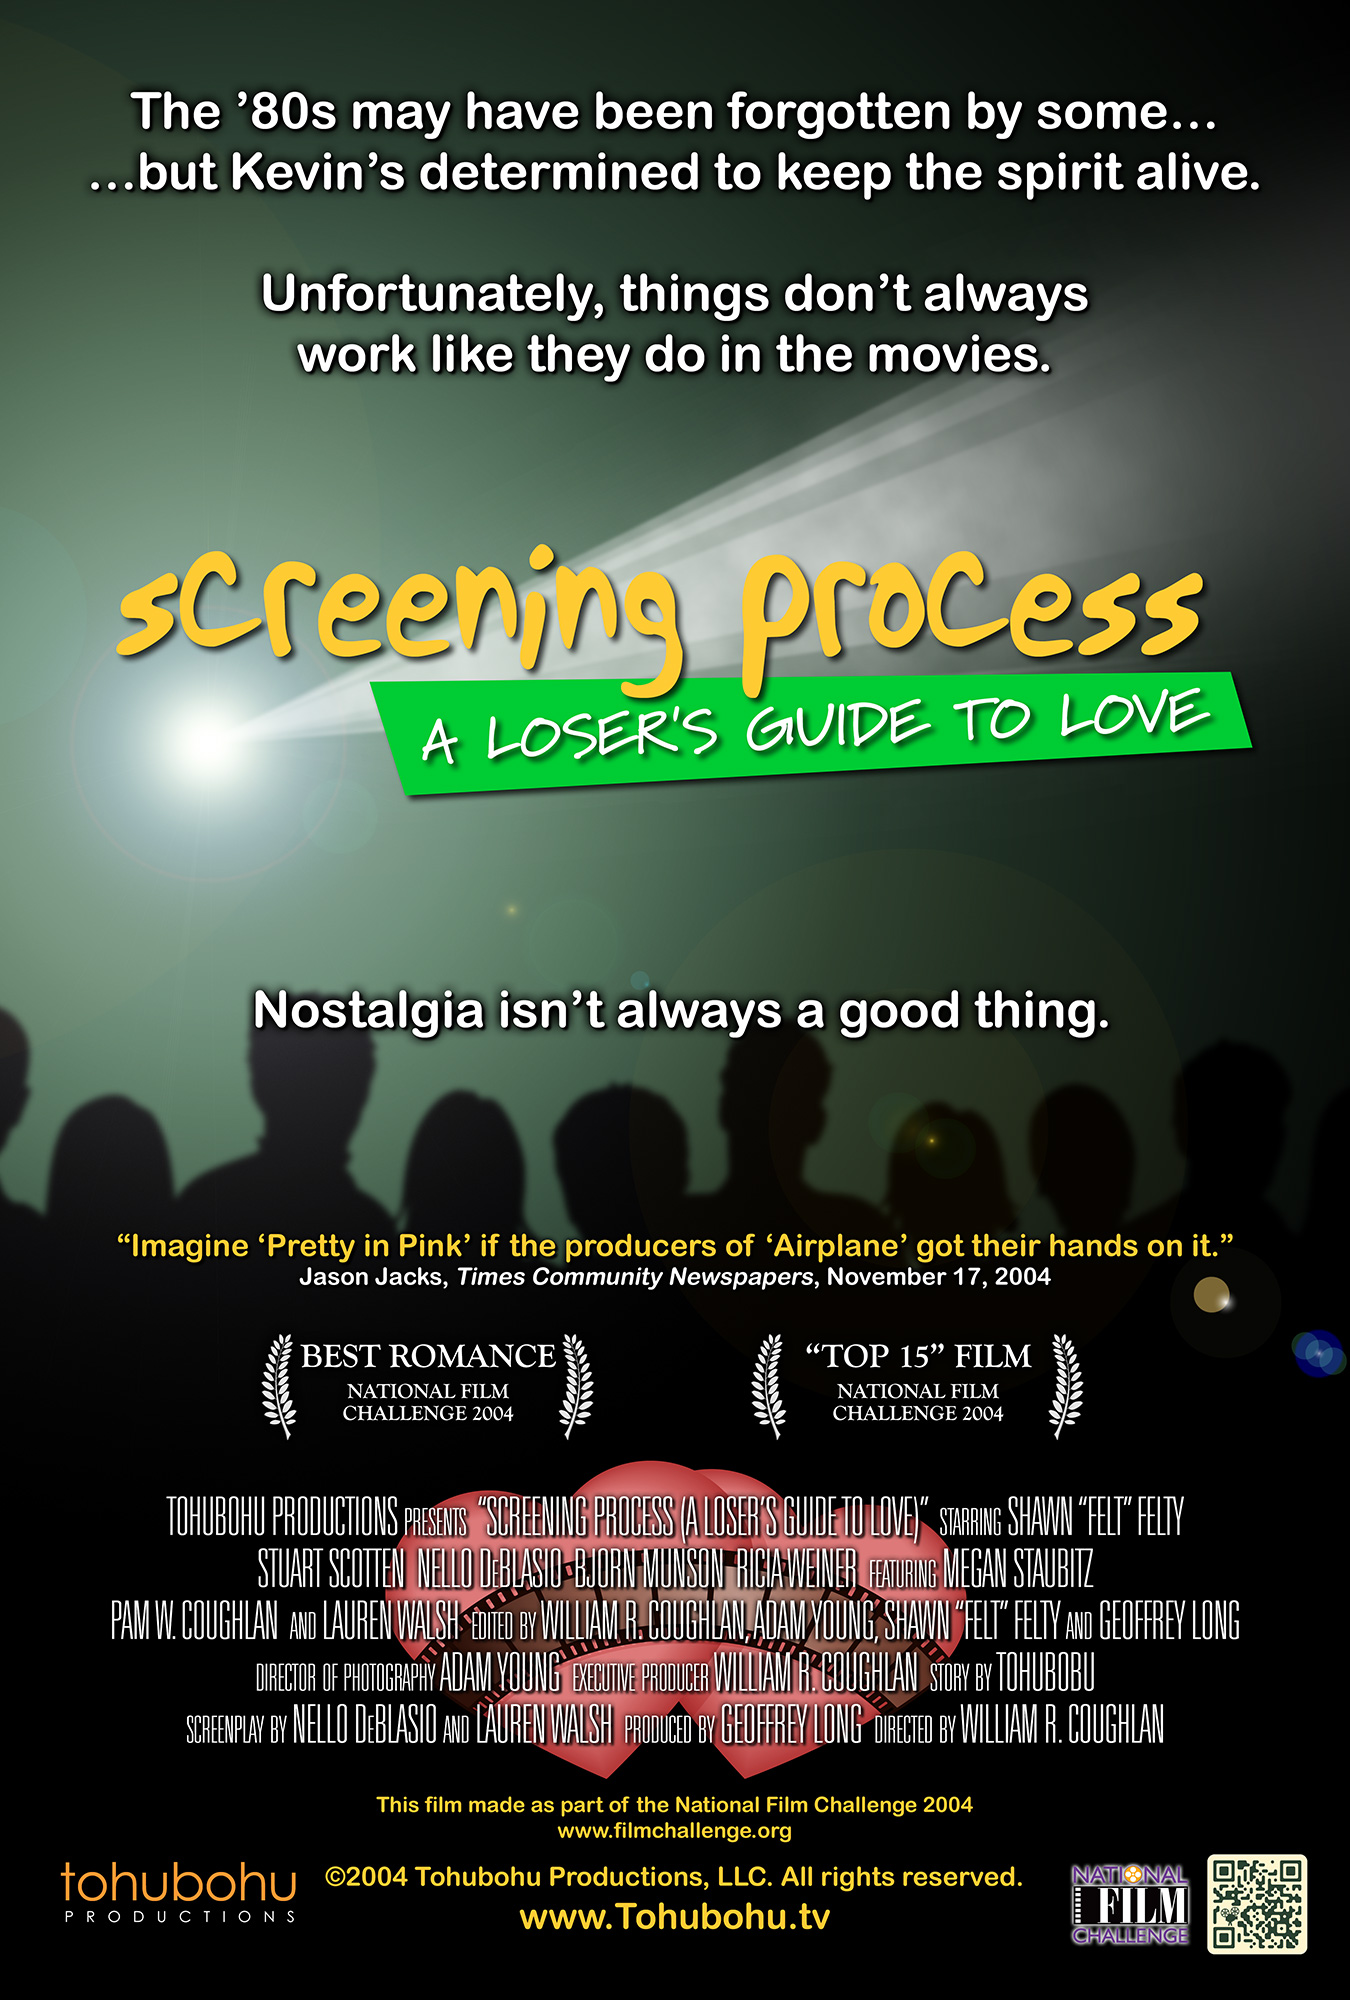 "Screening Process (A Loser's Guide to Love) - 2004 · 7:34 · story by Tohubohu · screenplay by Nello DeBlasio and Lauren Walsh · produced by Geoffrey long · directed by William R. CoughlanKevin can't seem to catch a break in the romantic arena, and his poker buddies aren't afraid to let him know it. Over the course of a friendly game, they recount his romantic misadventures, and a pattern emerges — all of Kevin's concepts of romance derive from 1980s-era films. Which might be all right, except that Kevin can't seem to execute them the way they come off in the movies. Whether he's reenacting his favorite scenes from ""Pretty in Pink,"" ""Ferris Bueller's Day Off,"" ""Top Gun,"" or ""Say Anything,"" he always manages to end up with egg on his face. That is, until he meets just the right woman…""Screening Process (A Loser's Guide to Love)"" — a romance — was Tohubohu's official entry into the 2004 National Film Challenge competition. The short was written, shot, and edited over the weekend of October 1–4, 2004. Its first theatrical screening was at the Warehouse Theater on Tuesday, November 9, followed by a showing as part of Washington, D.C.'s Art-O-Matic festival on December 2."